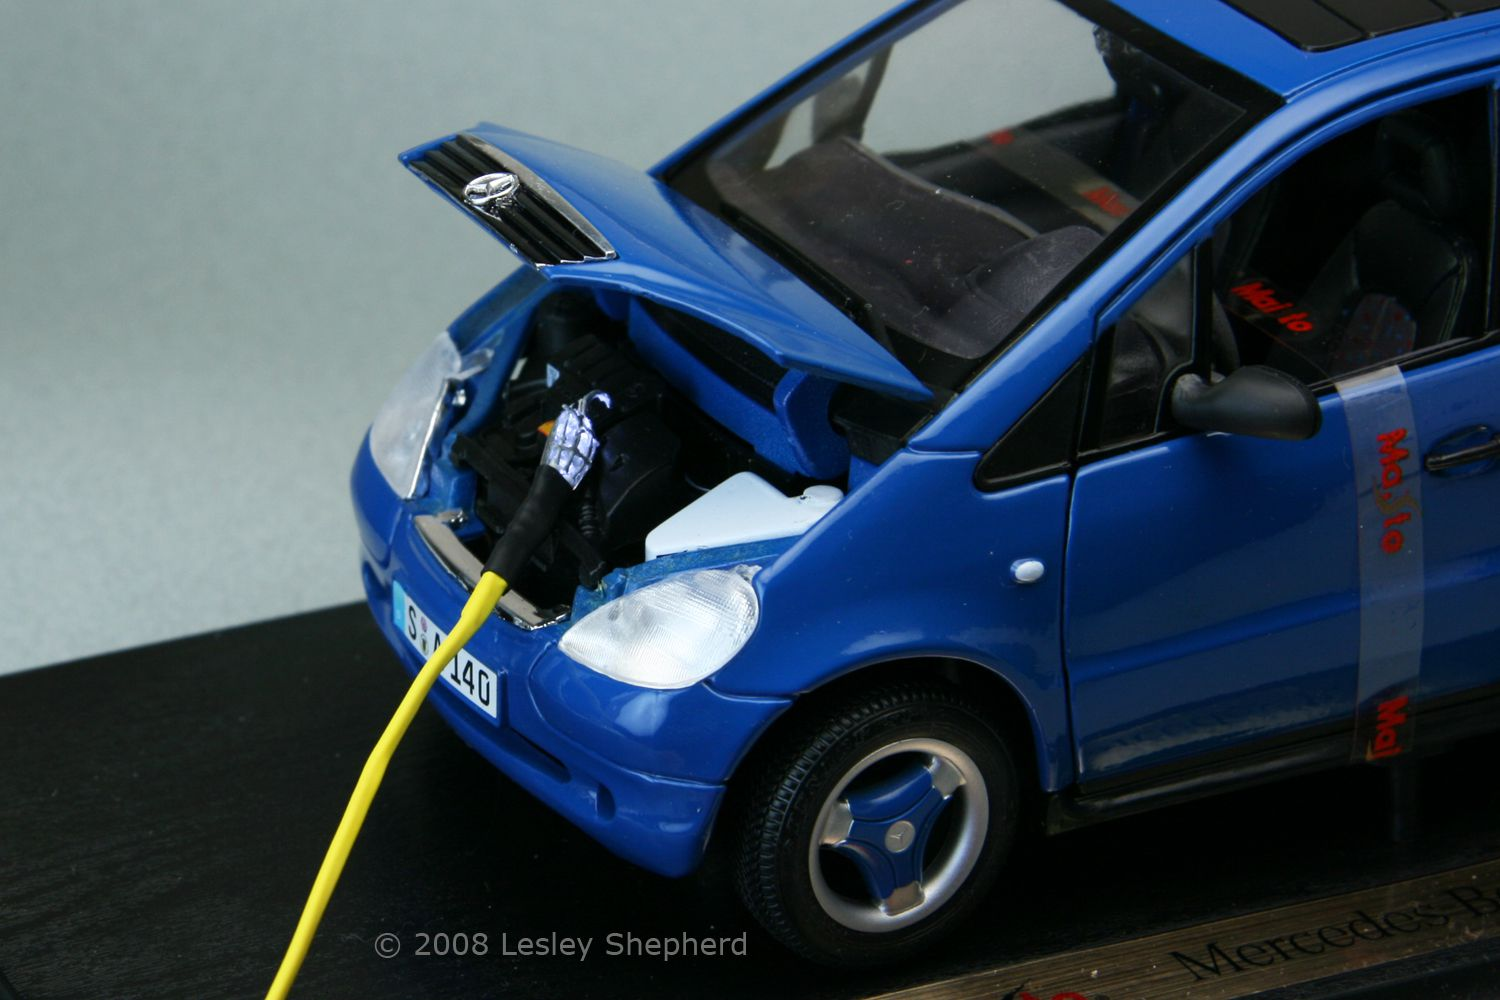 A die cast car engine lit up by a working model trouble light in 1:18 scale.